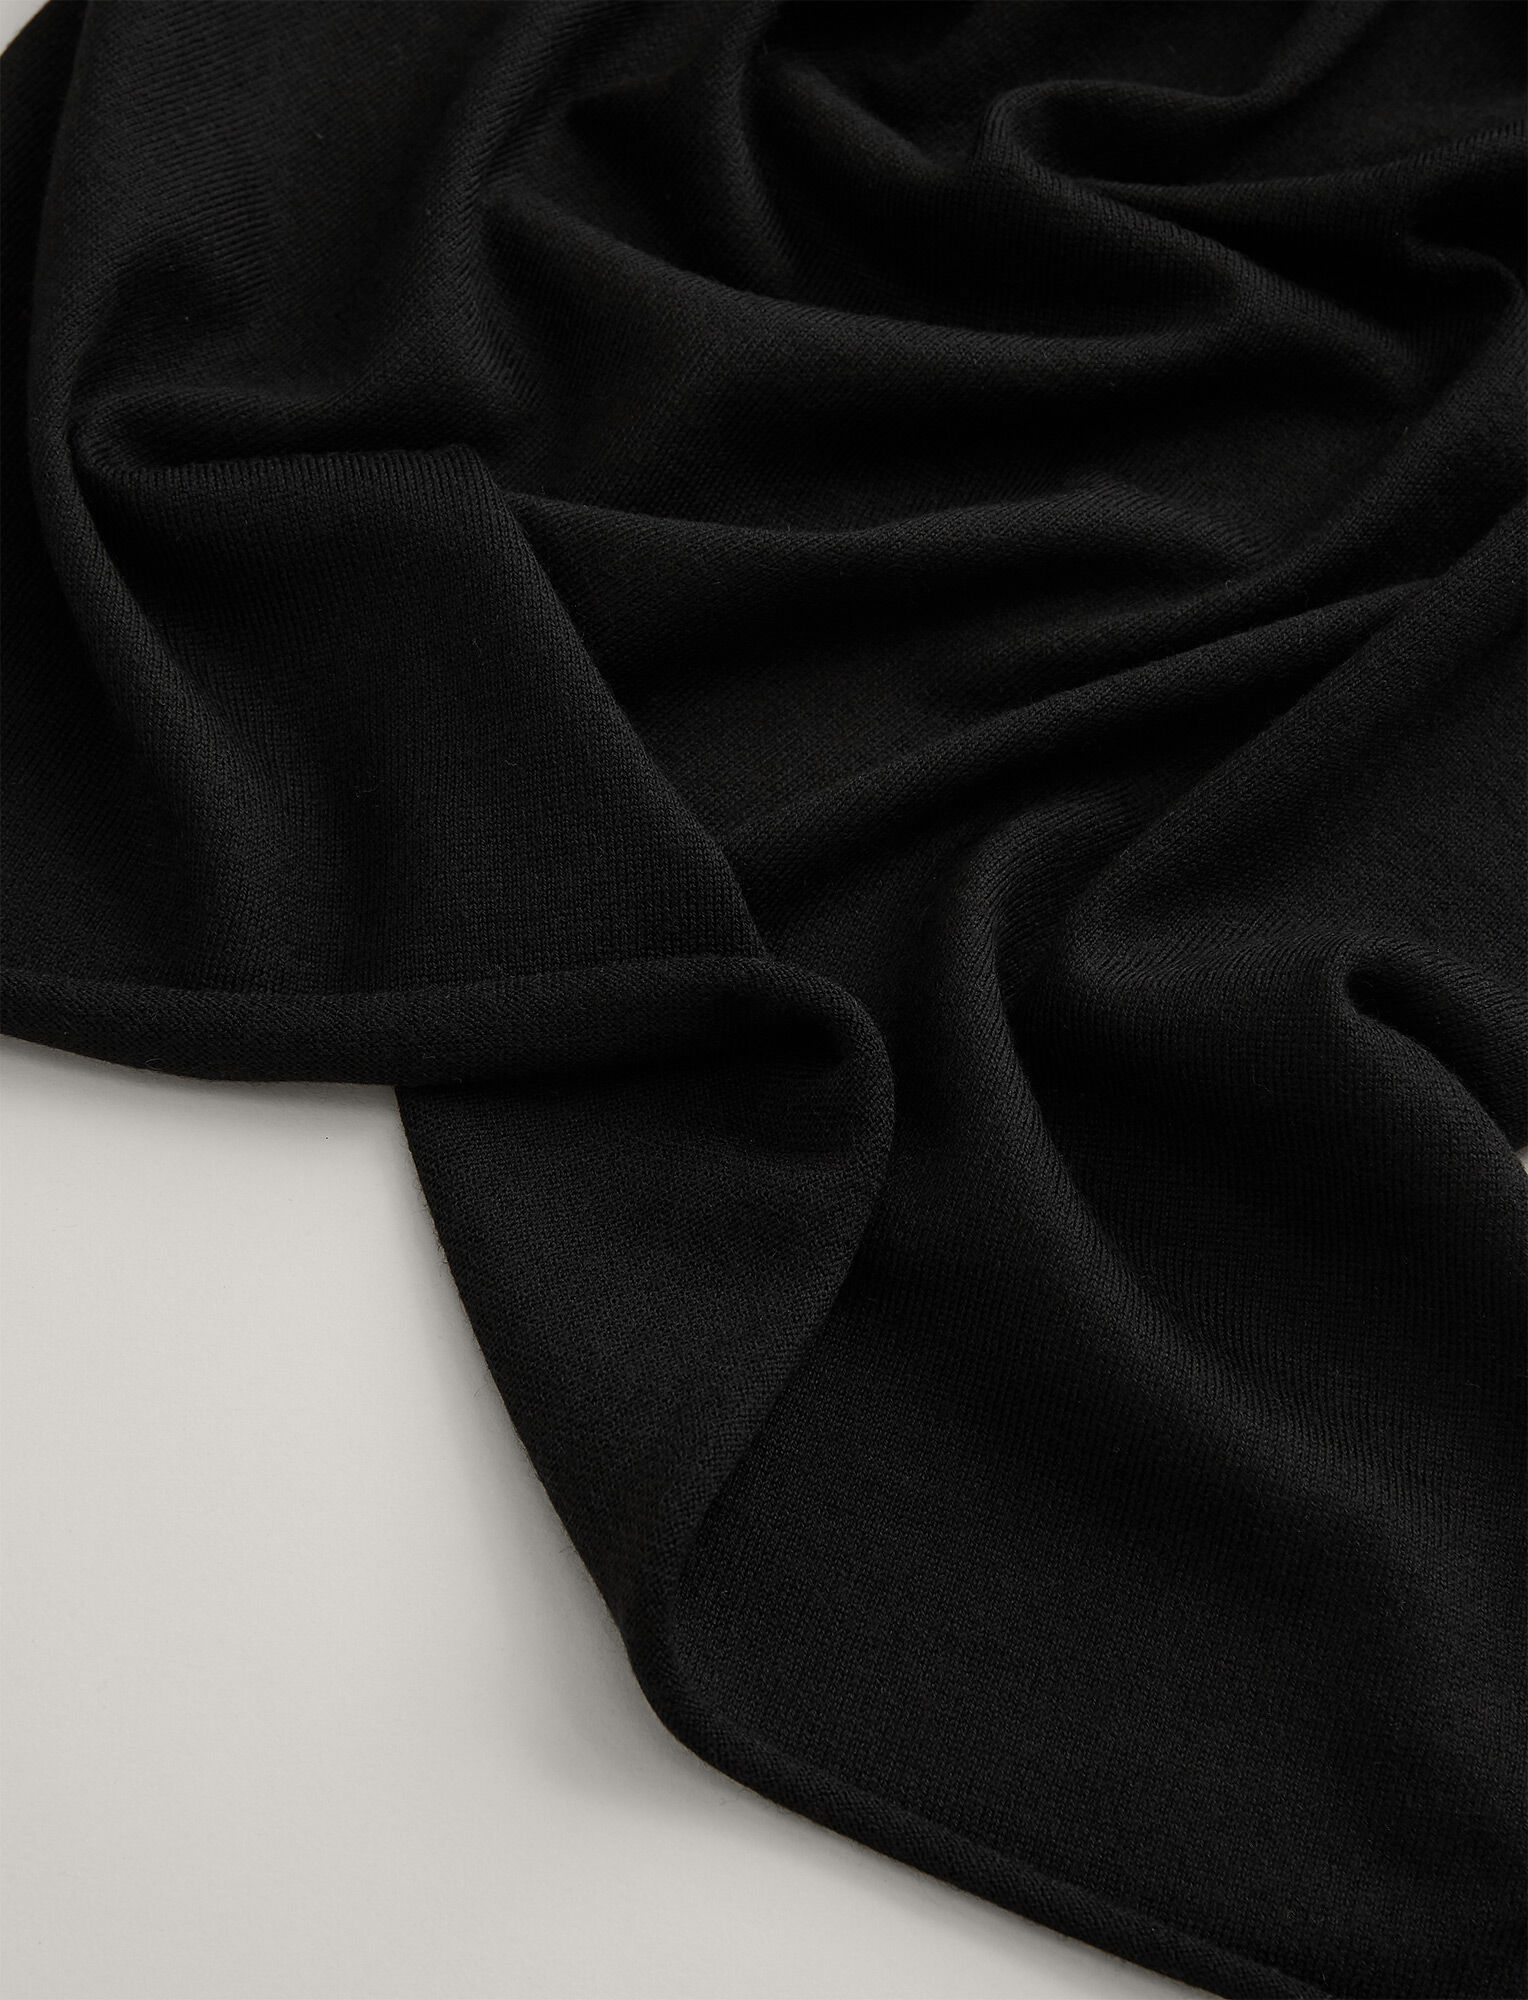 Joseph, Silk Merinos Scarf, in BLACK